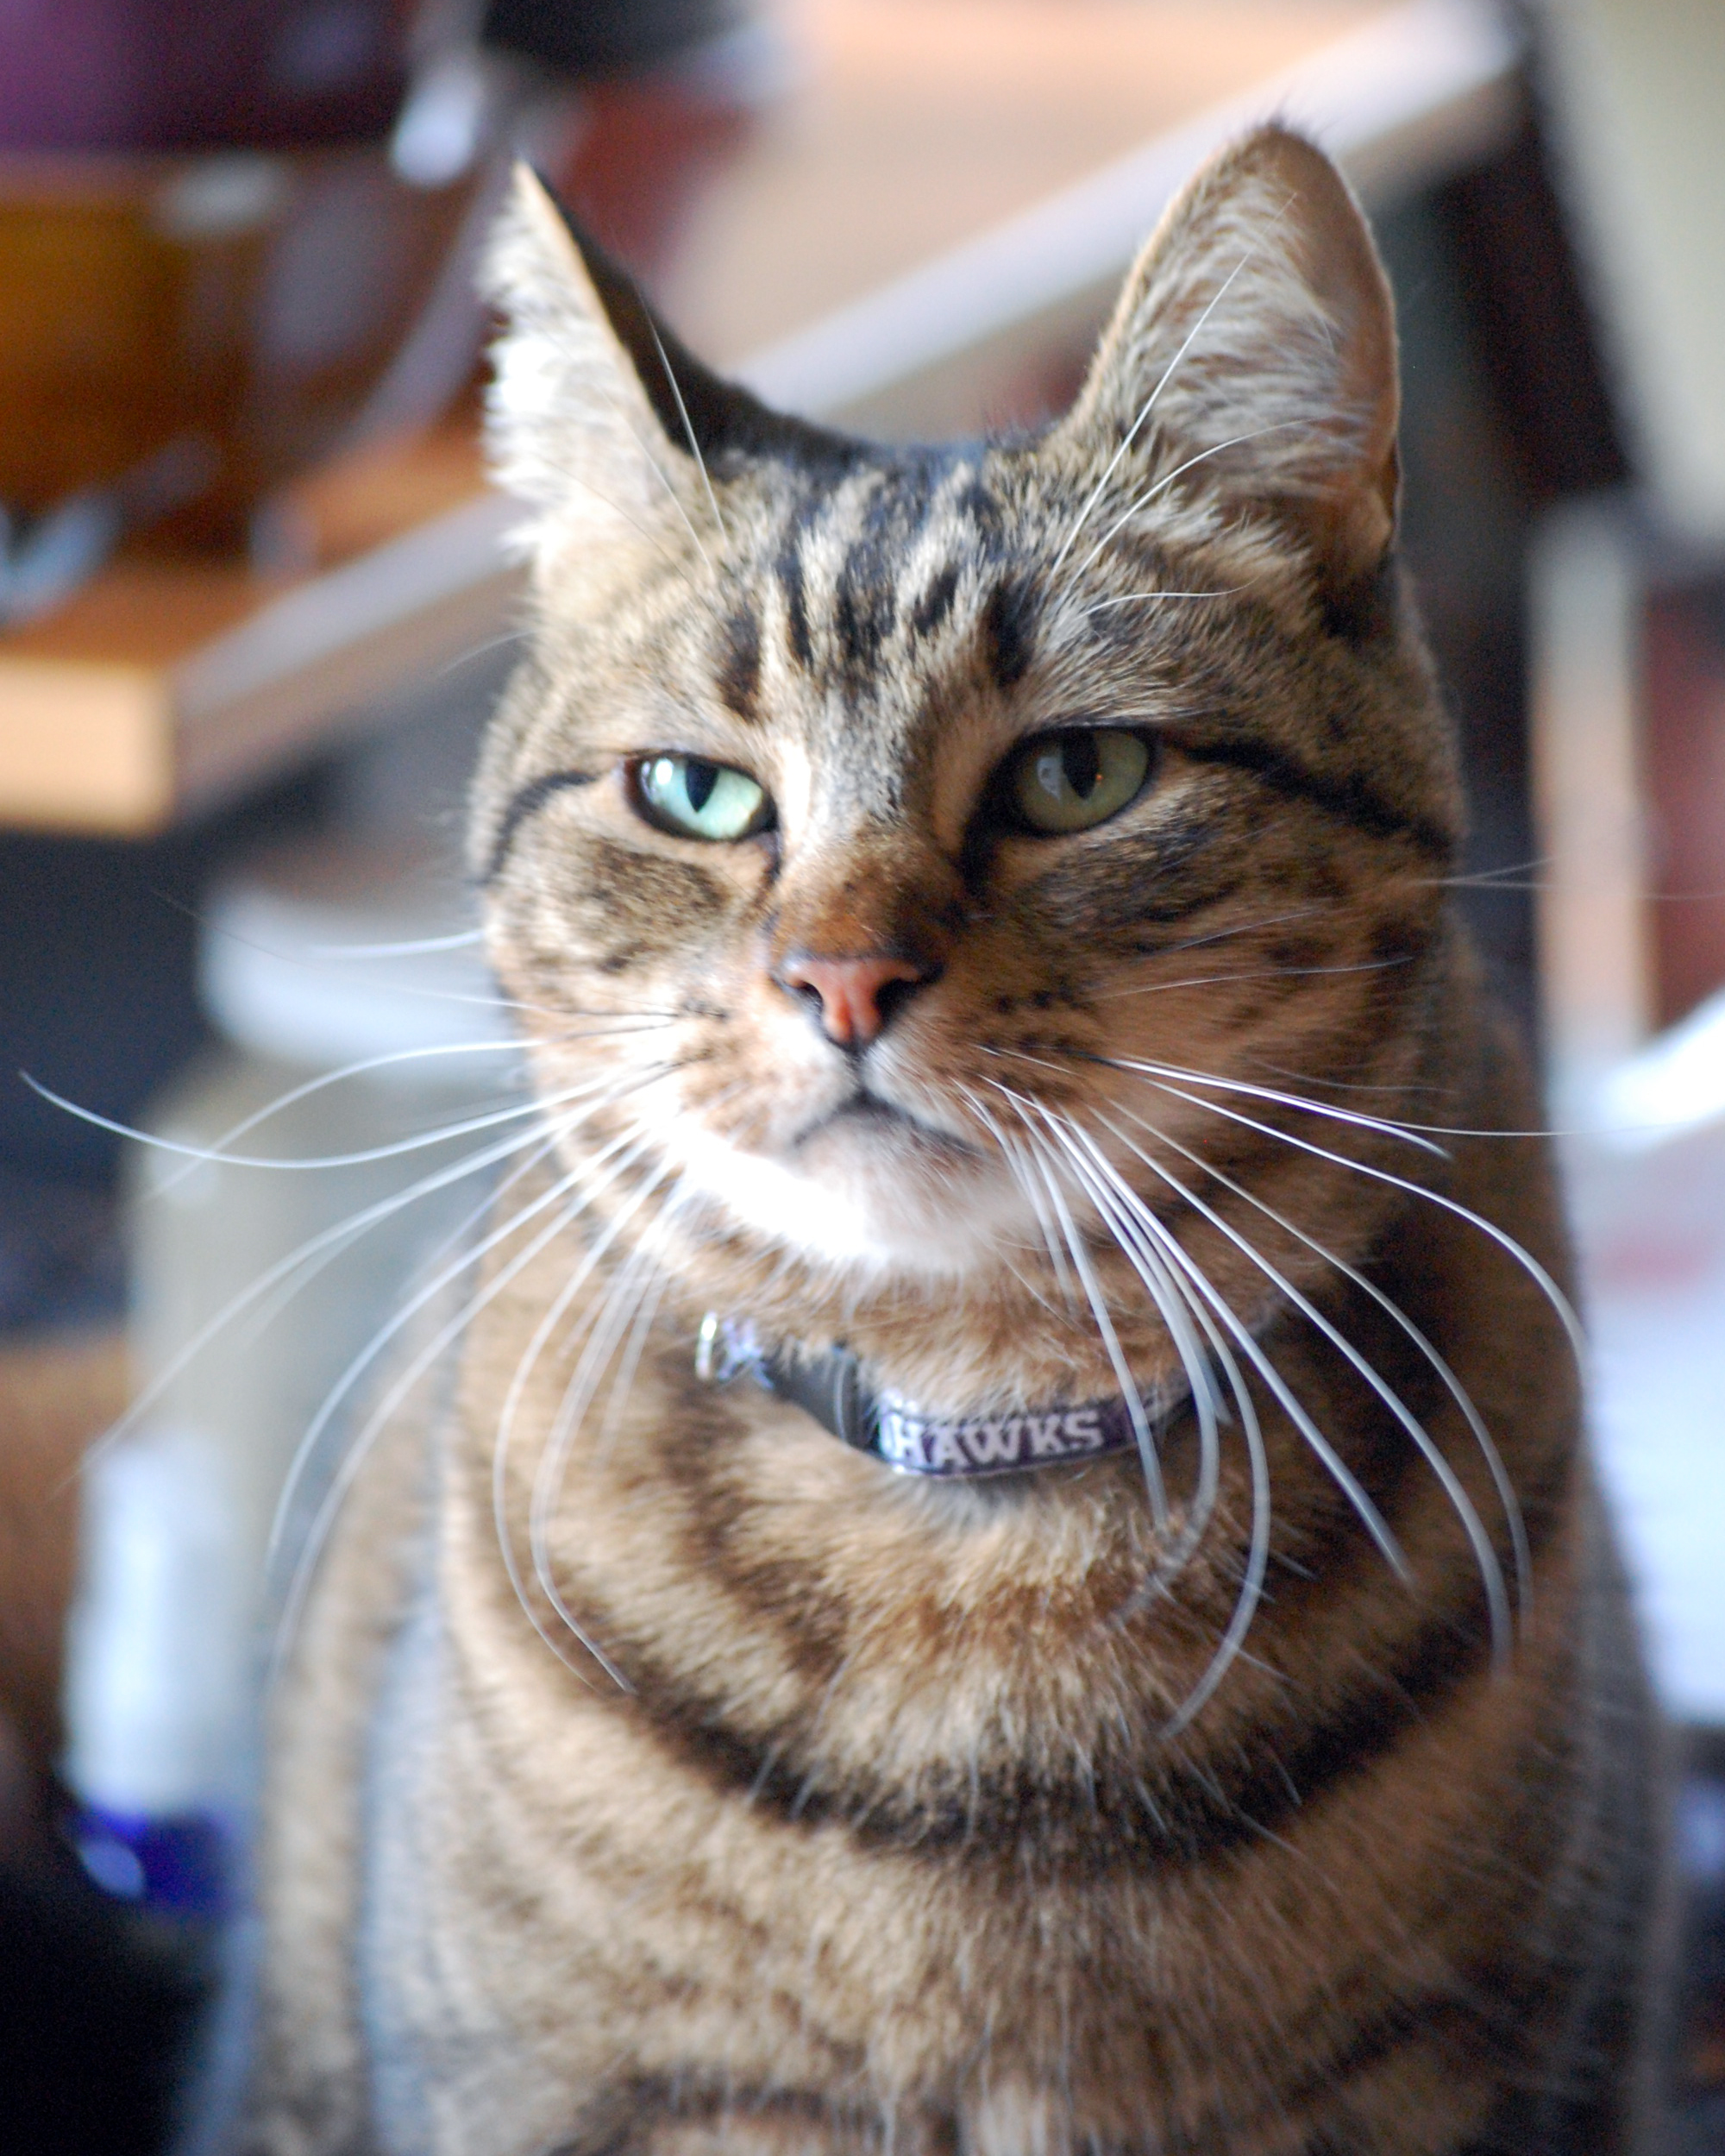 Shamanic Lessons, The Seahawks And 12th Cat